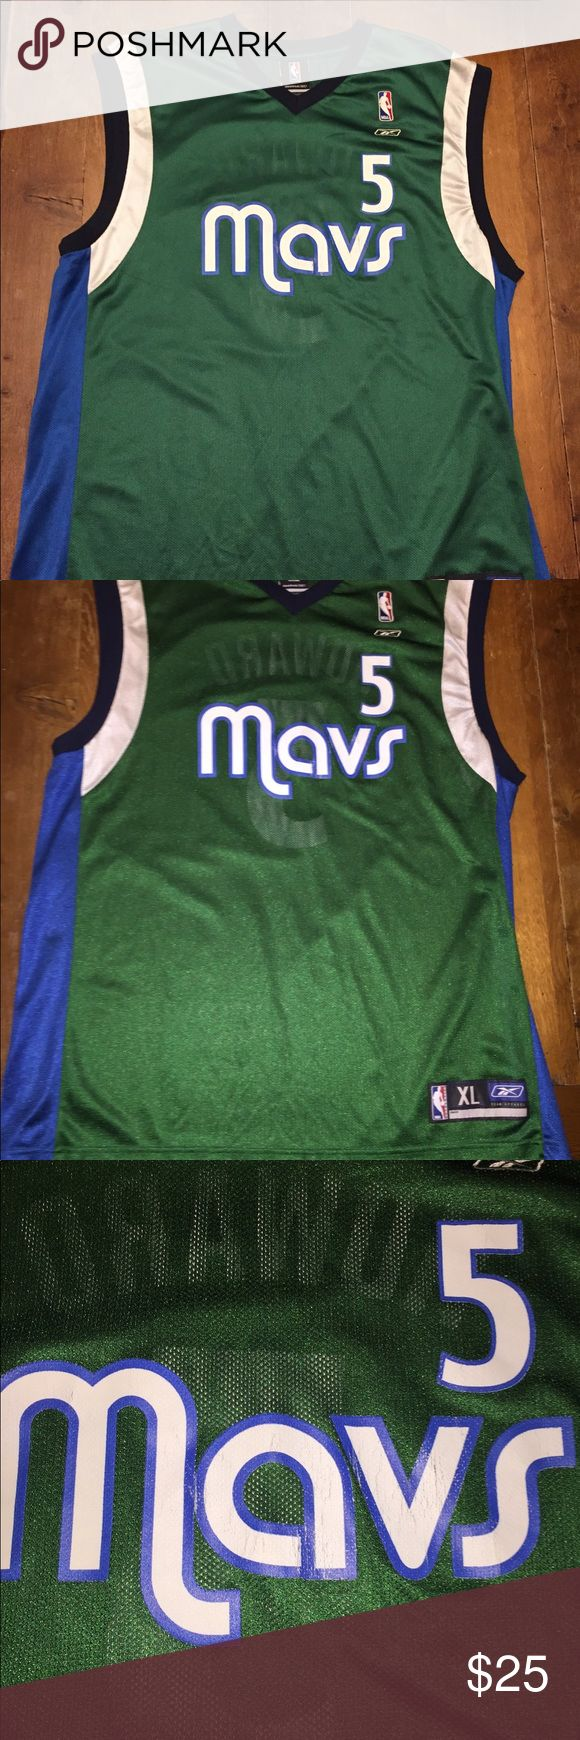 Dallas Mavericks throwback Fab Five nba jersey Good condition with some cracking on lettering see pictures Reebok Shirts Tank Tops